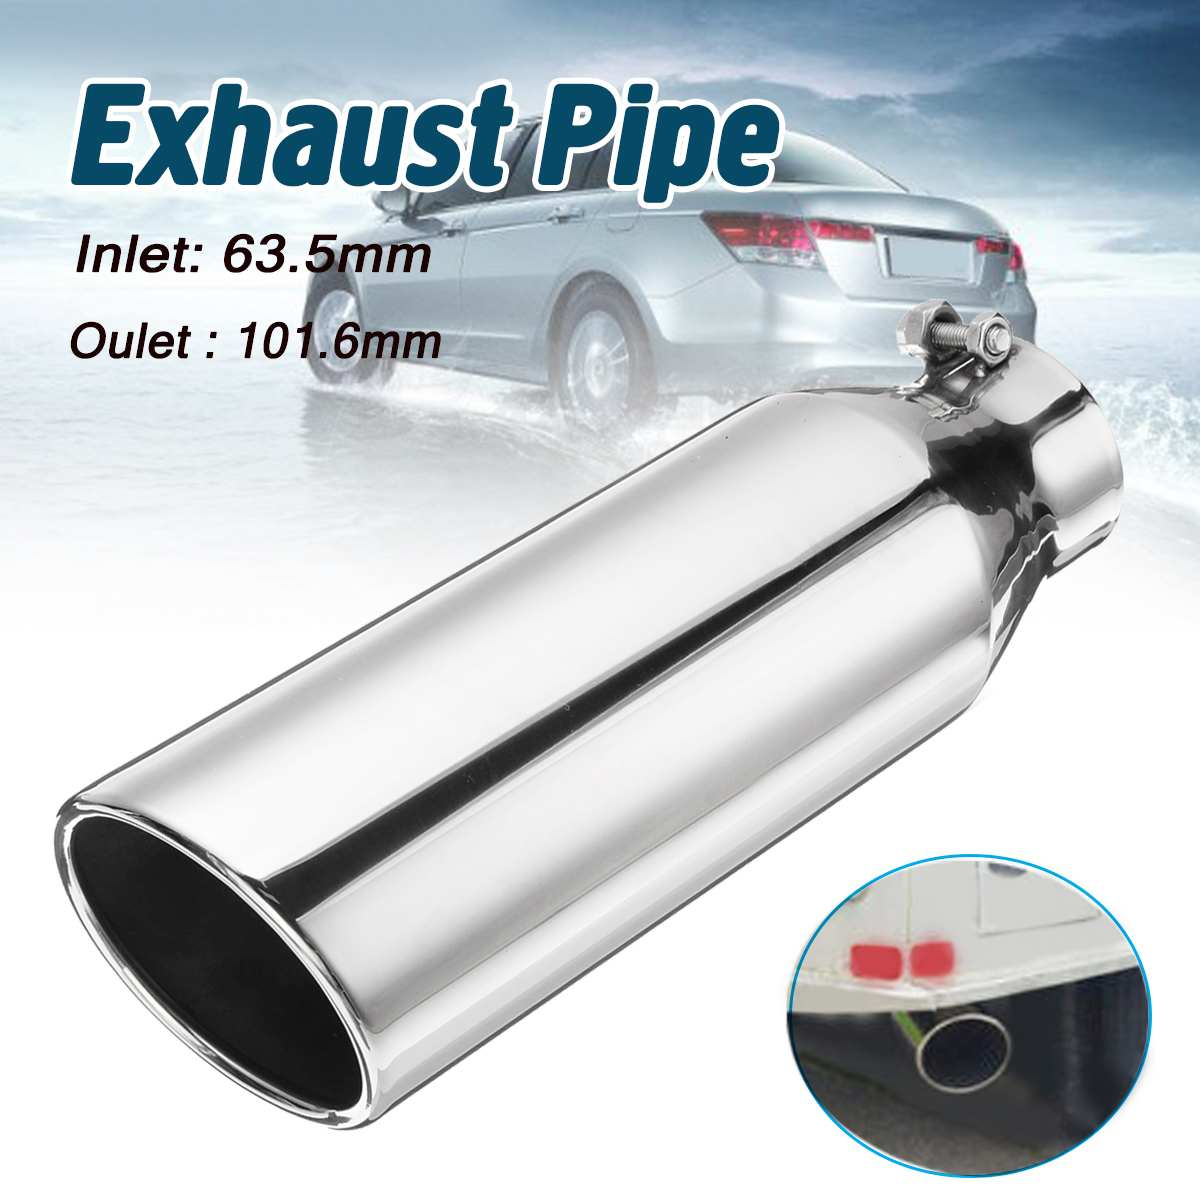 Diesel Exhaust Tip >> 30mm Stainless Steel Bolt On Diesel Exhaust Tip 2 5 Inch Inlet 4 Inch Outlet Chrome Tailpipe Exhaust Tip